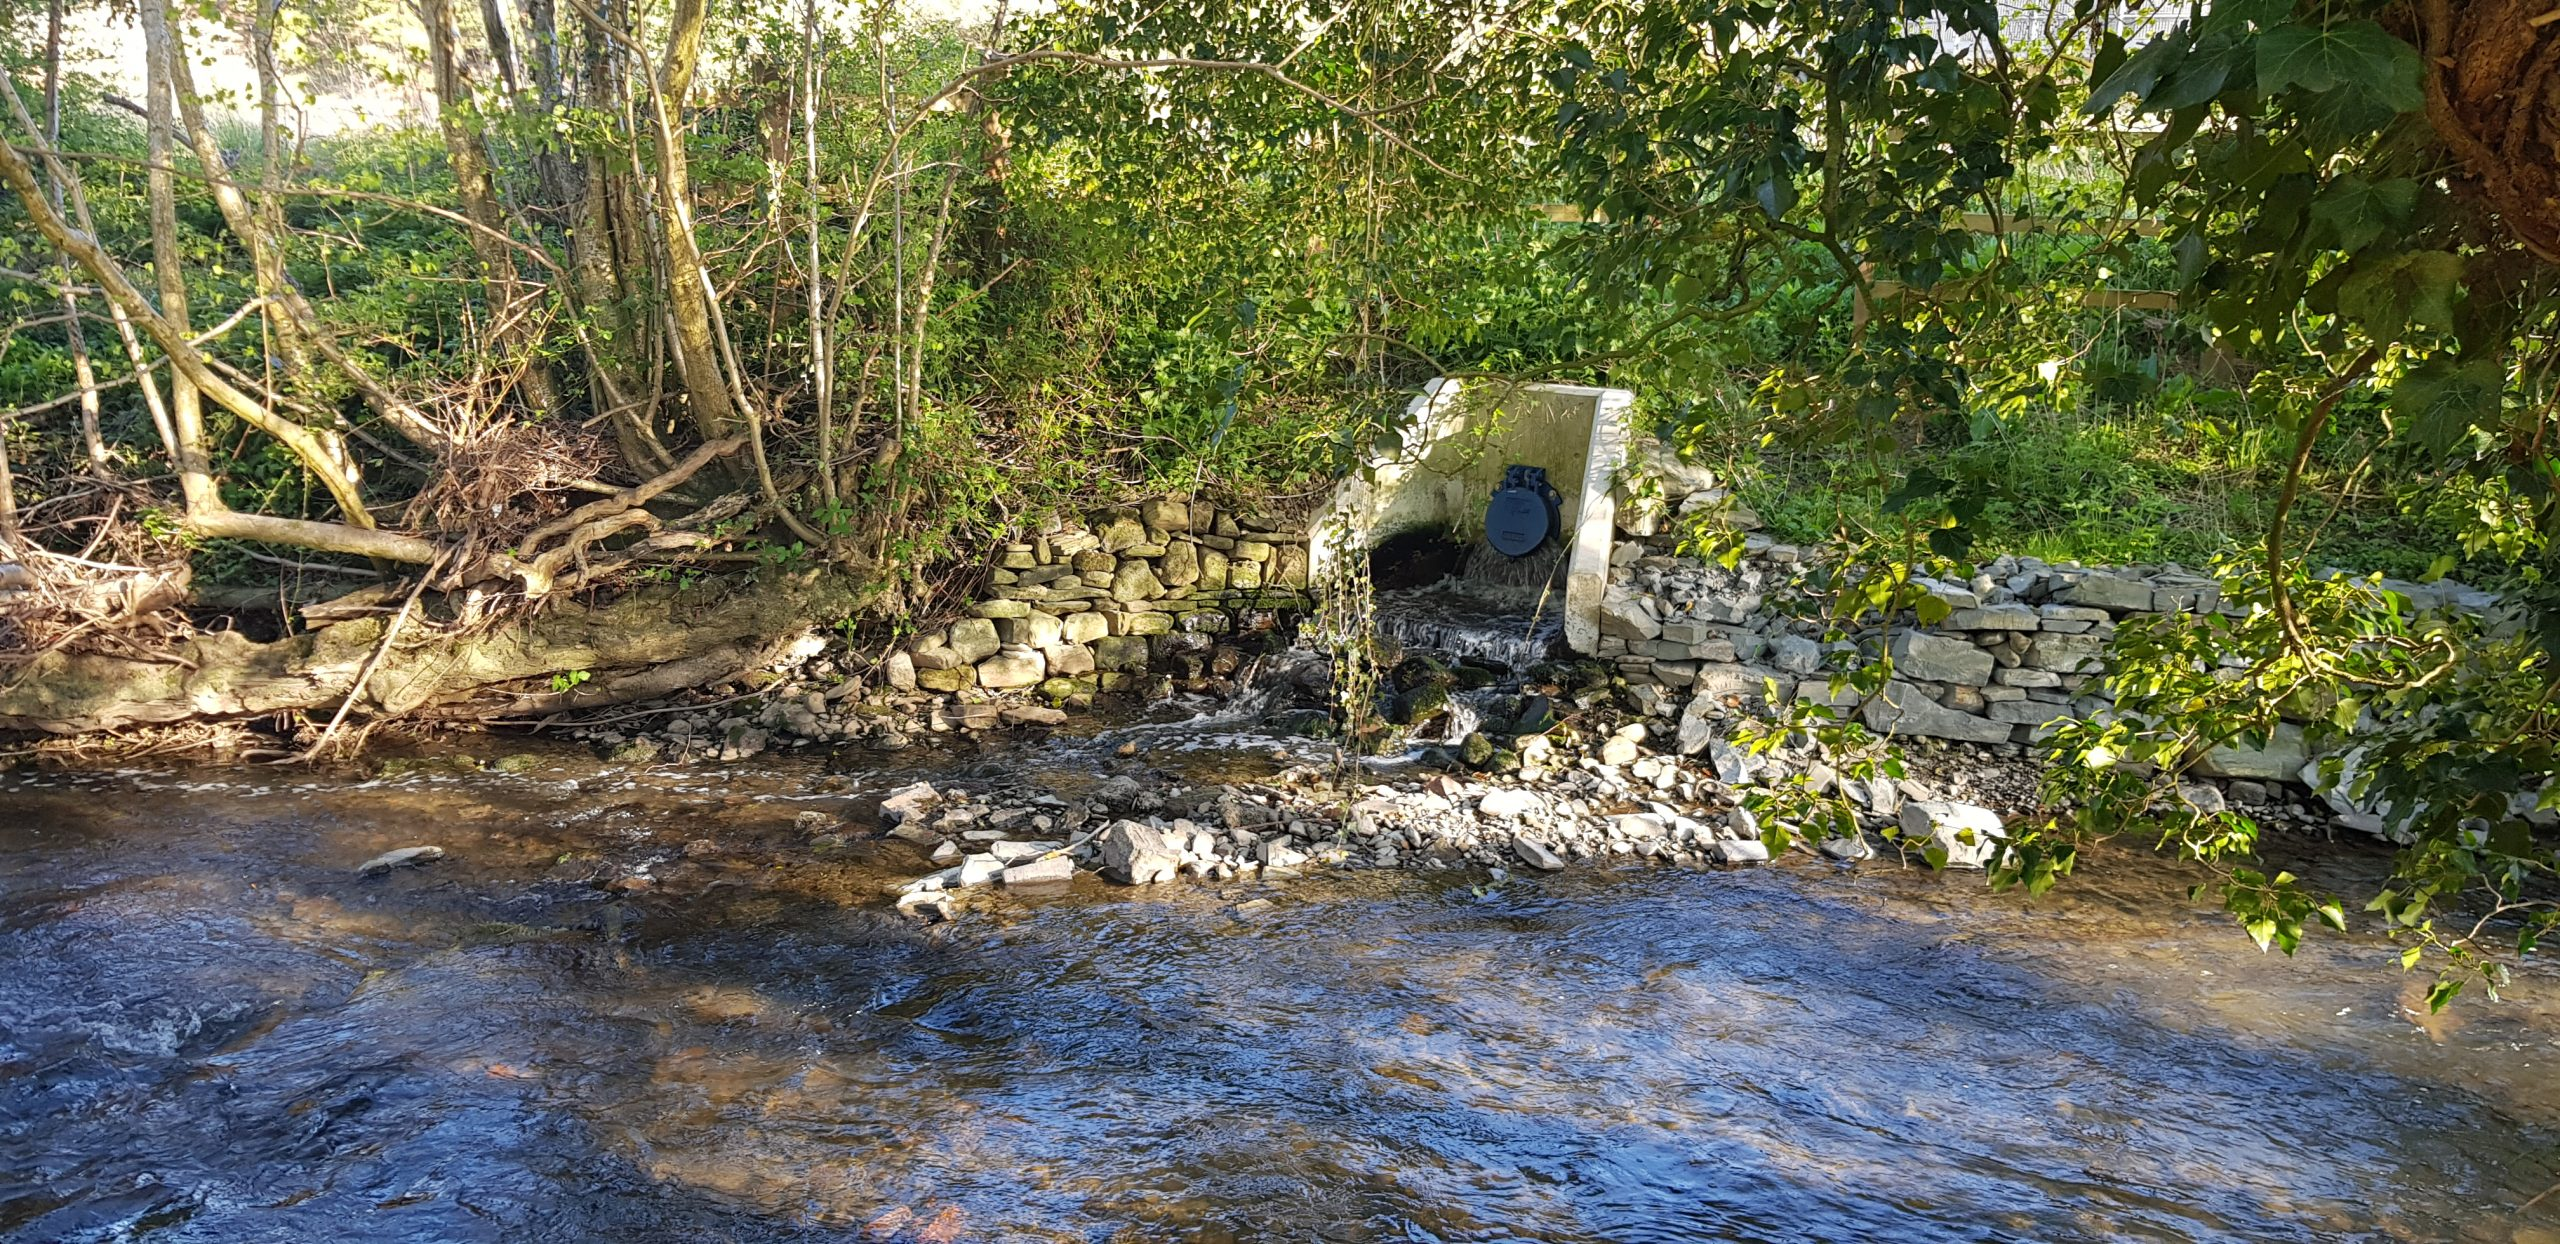 Sewage Outfall discharging into river